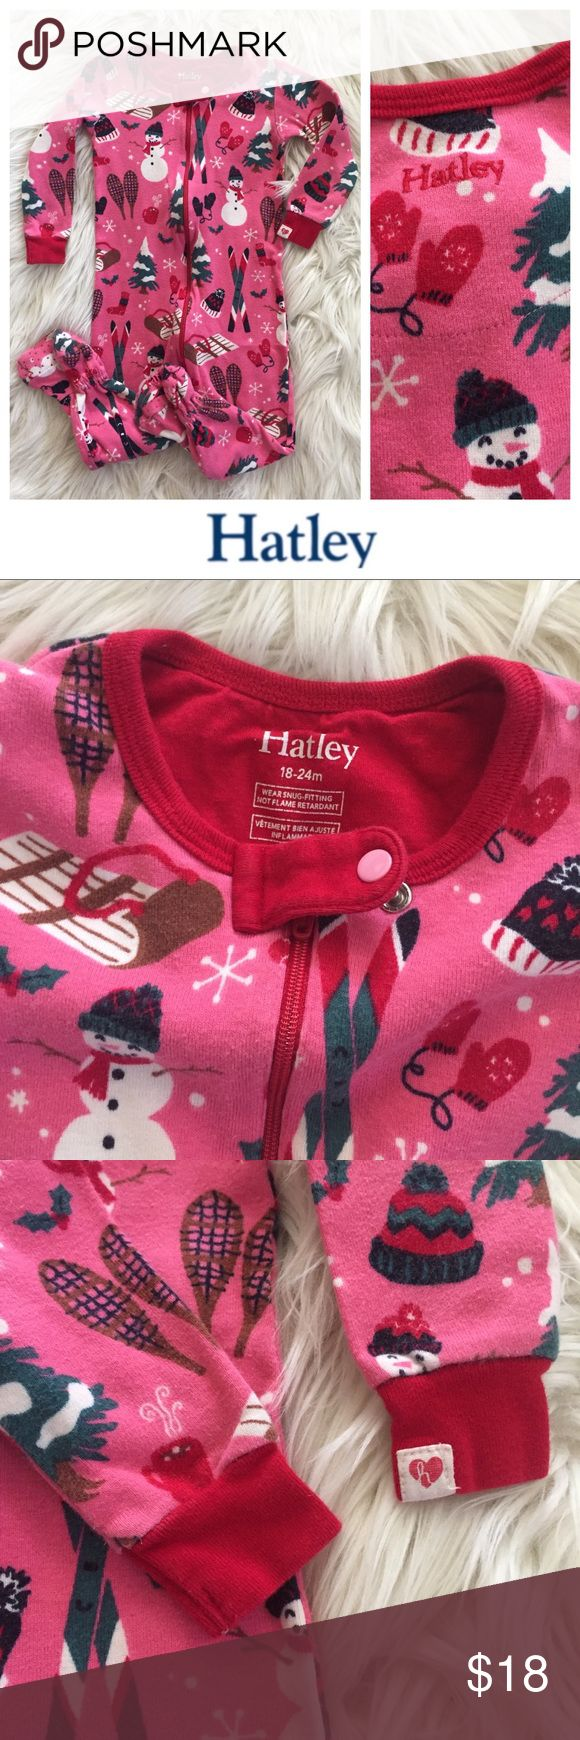 Hatley Holiday Pajamas The most adorable used Hatley winter holiday pajamas. Size 18-24m. Bundle to save even more — I have tons of kids clothes and my closet's meant to be bundled! Hope you enjoy ♥️ Hatley Pajamas